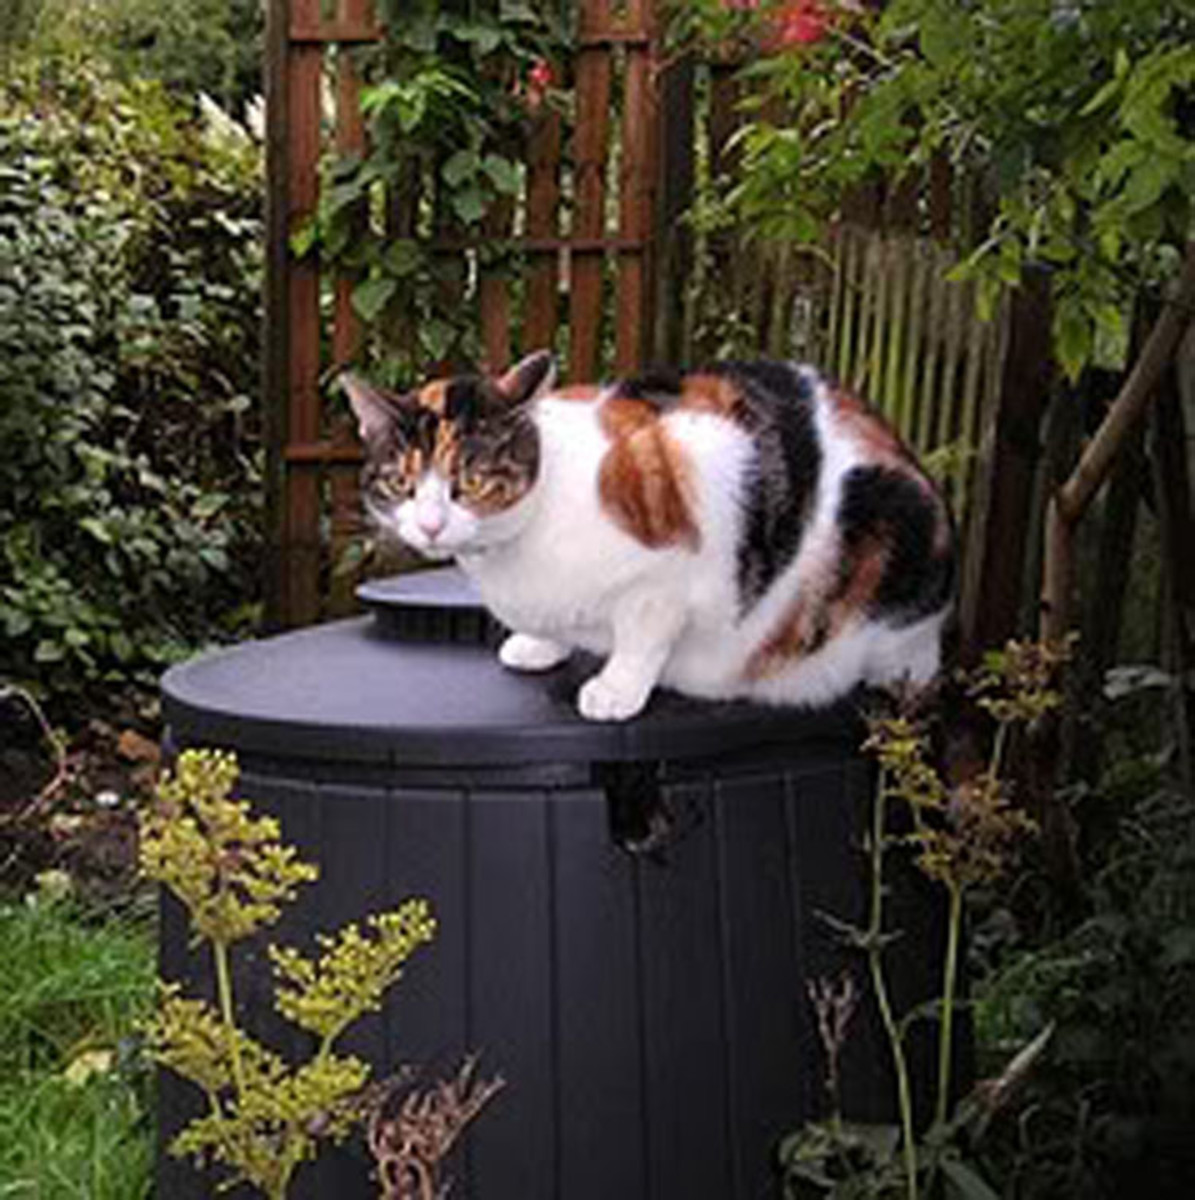 My cat, Pussums, sitting on the compost bin.